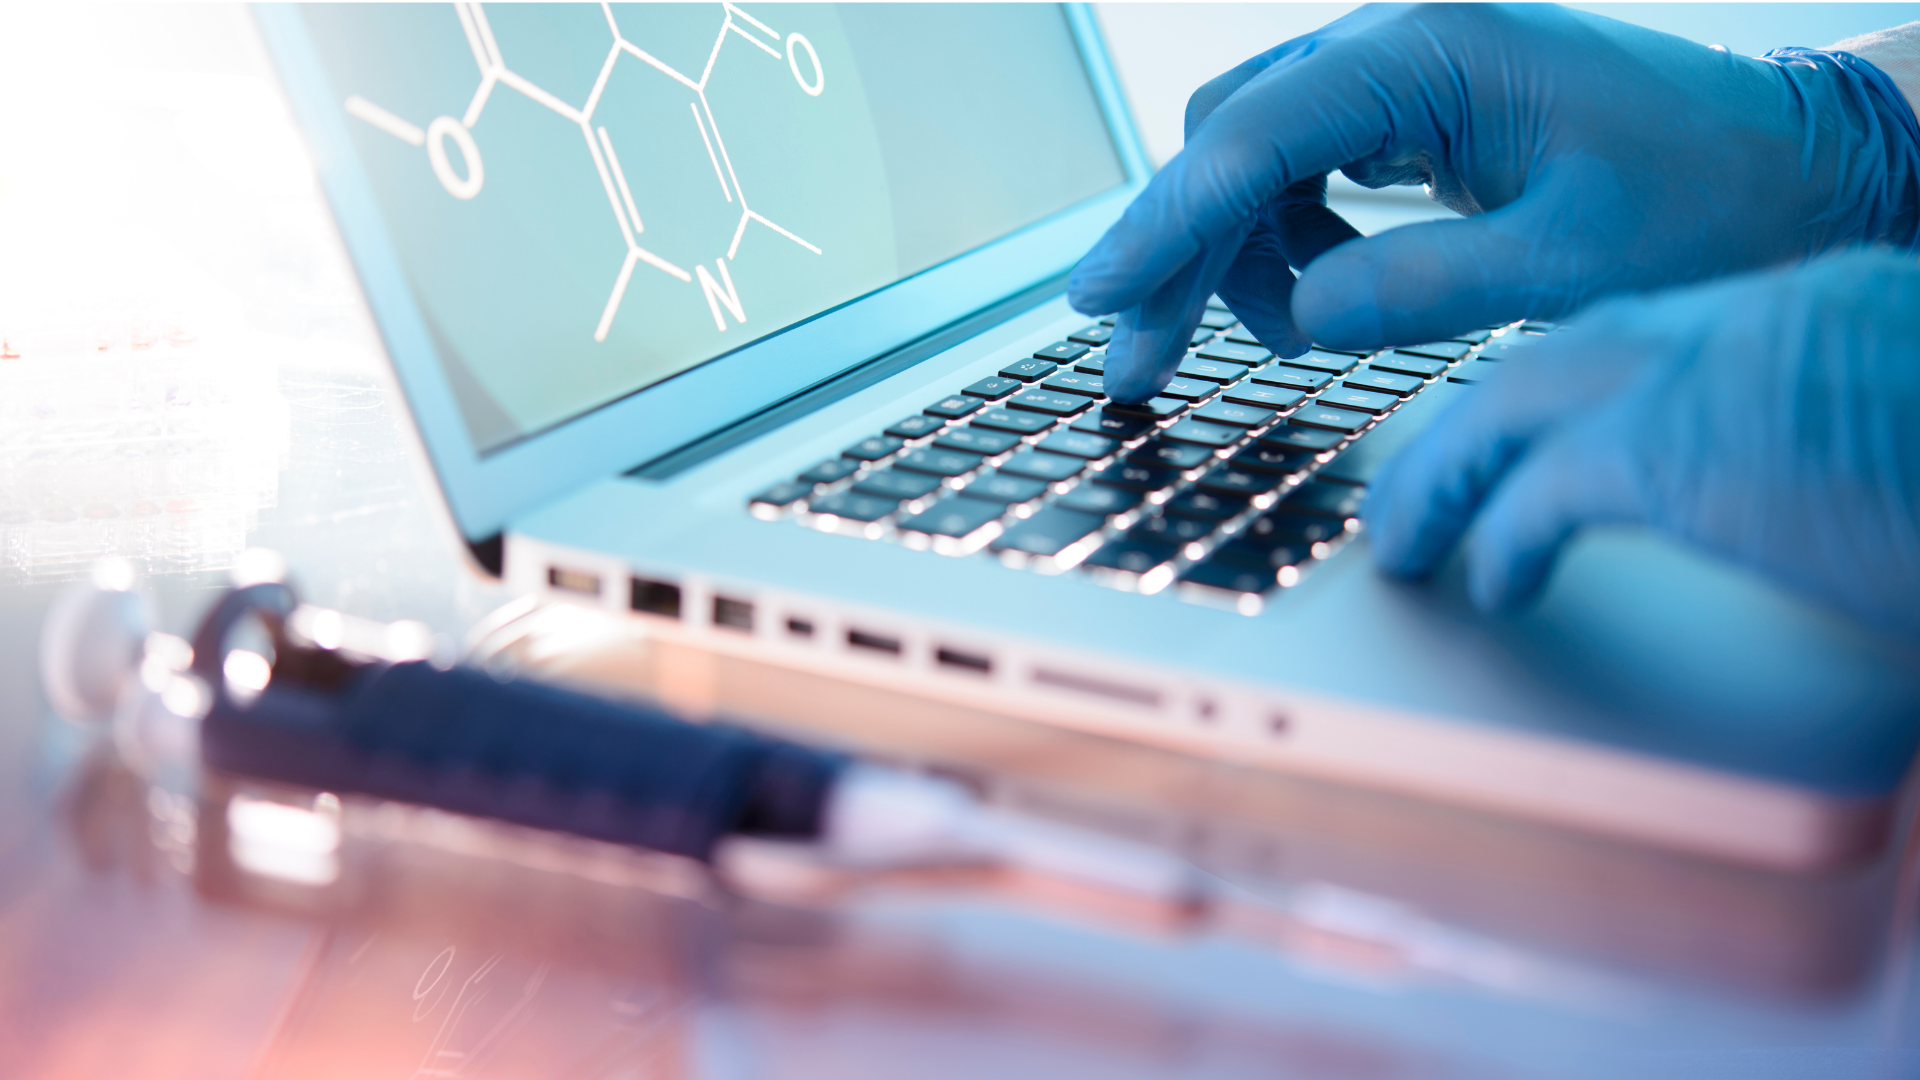 Best Online Master's Applied Science - featured image of scientist working on research